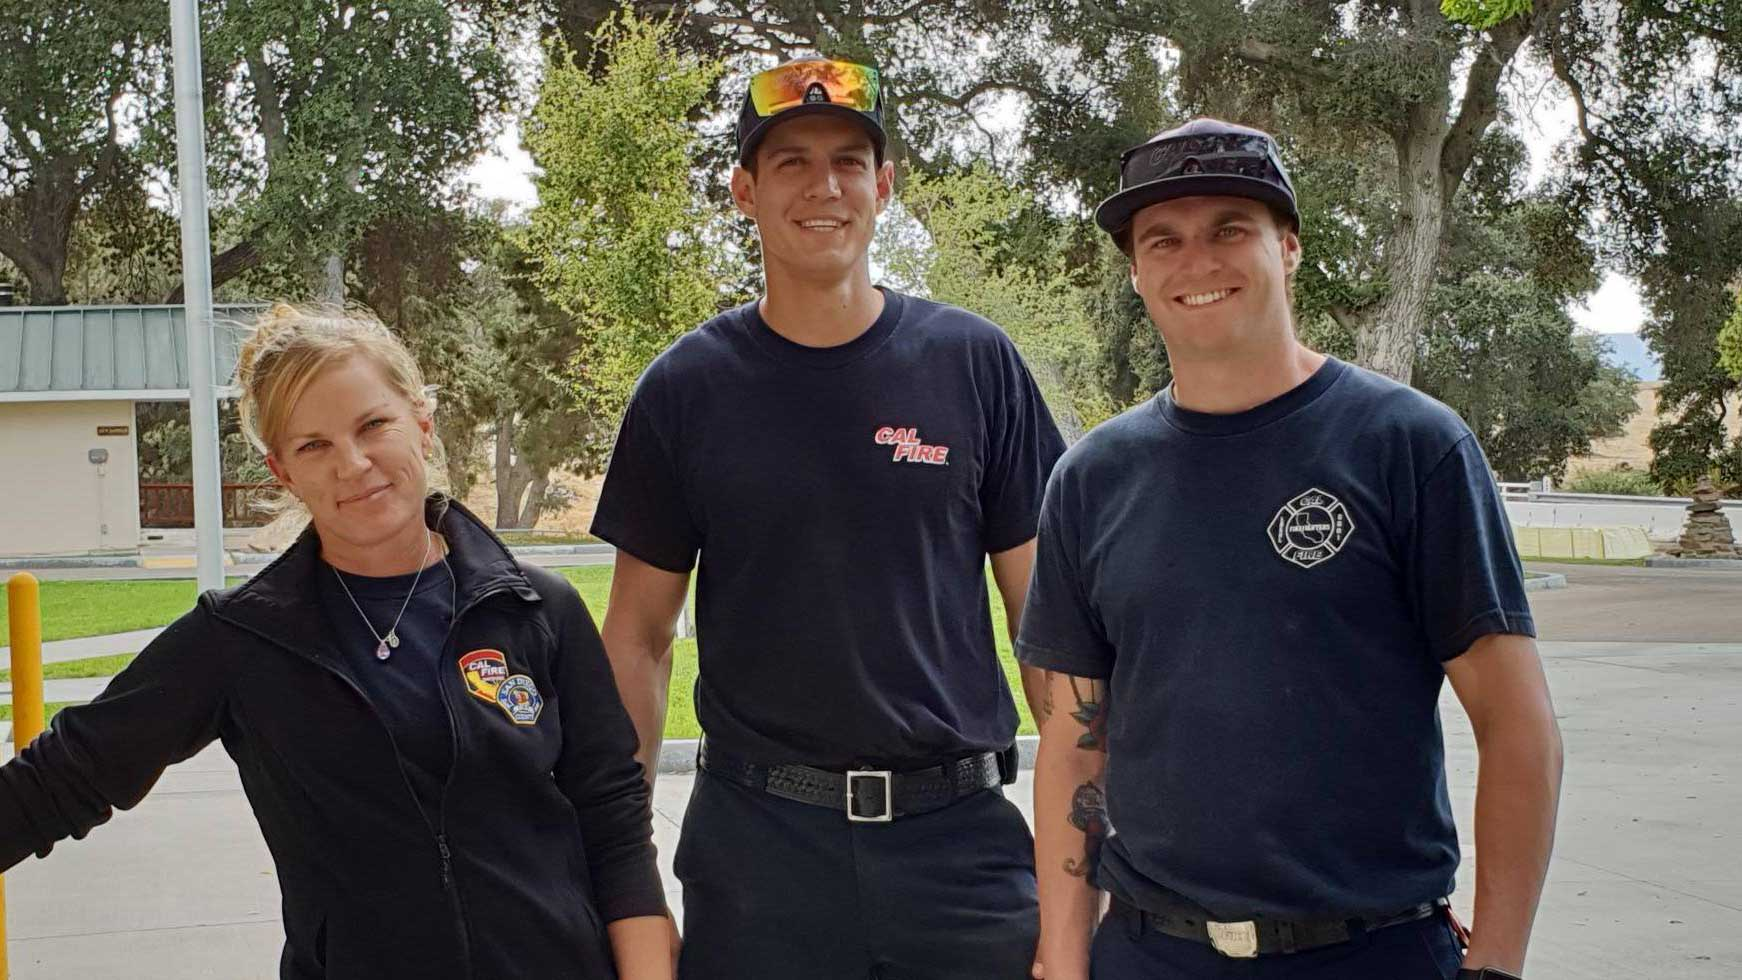 Krissy, Dax and Brandon at Warner Springs fire station